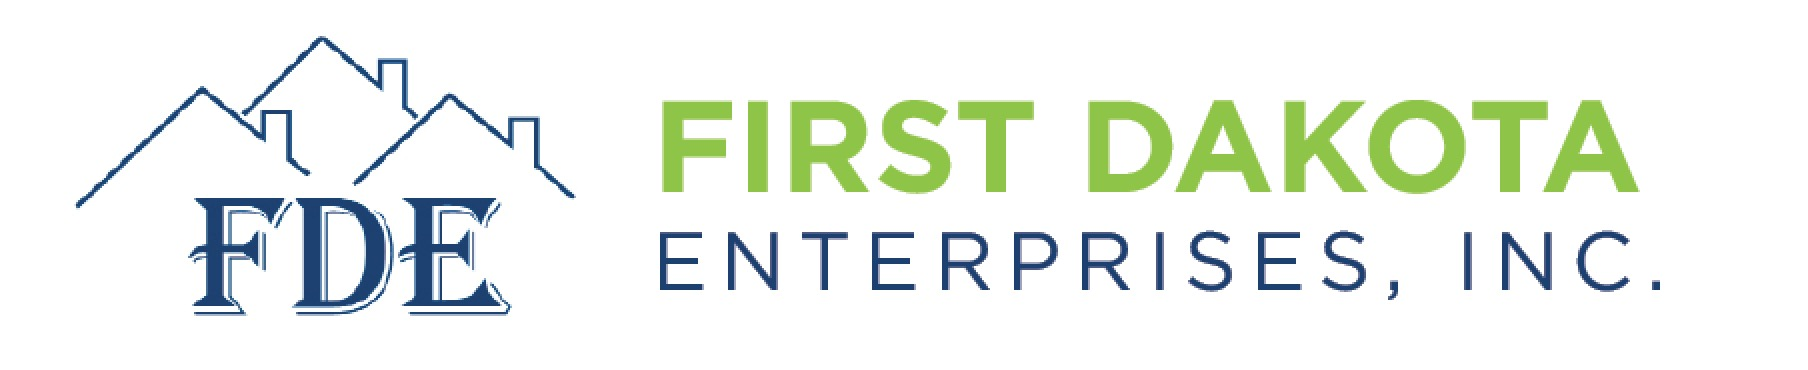 First Dakota Enterprises-logo